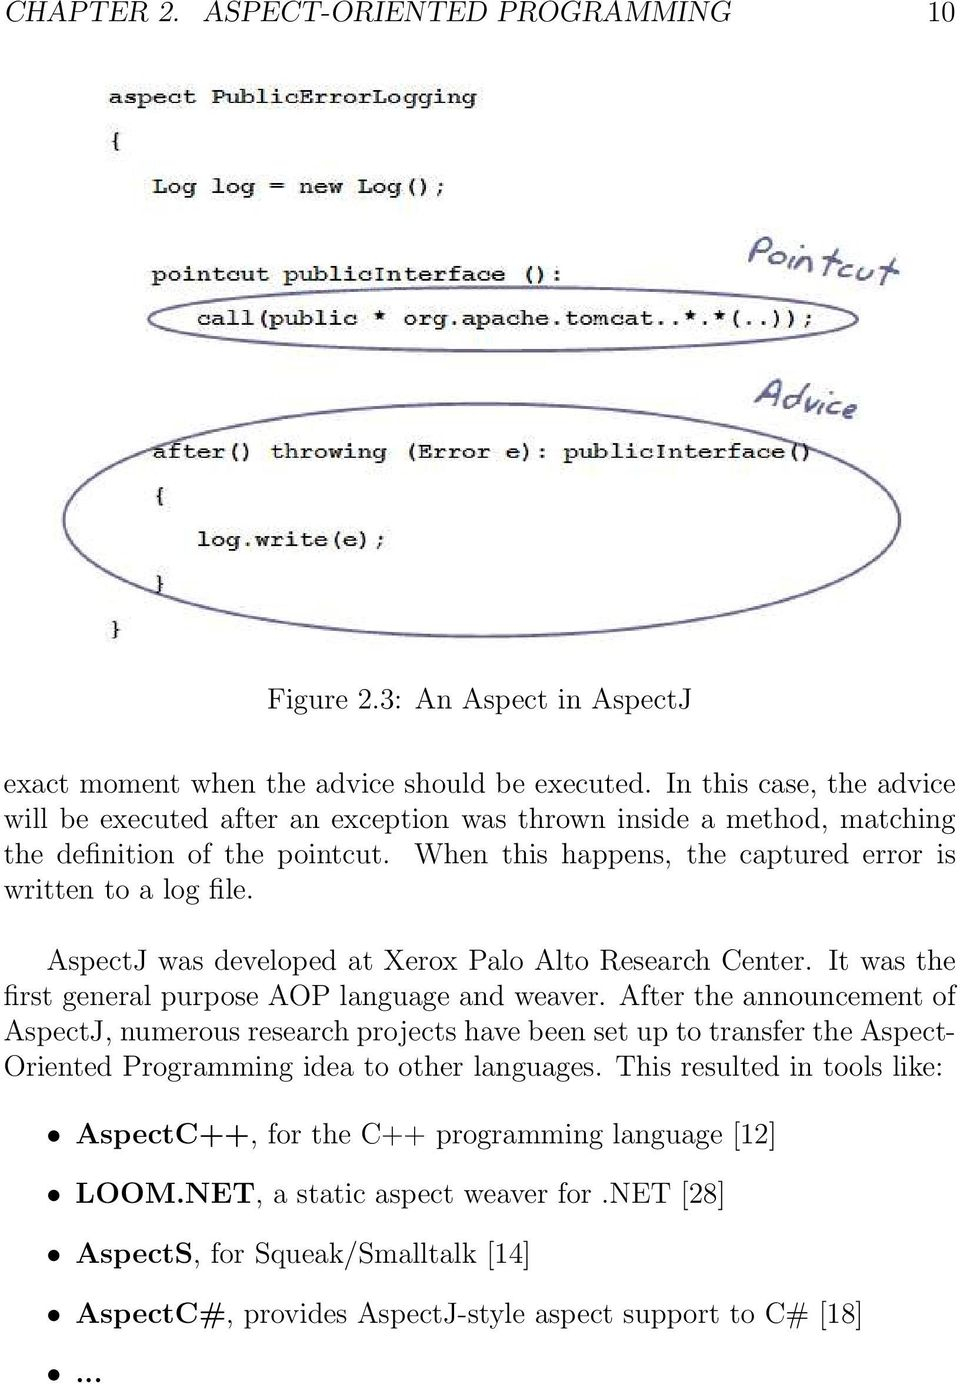 AspectJ was developed at Xerox Palo Alto Research Center. It was the first general purpose AOP language and weaver.